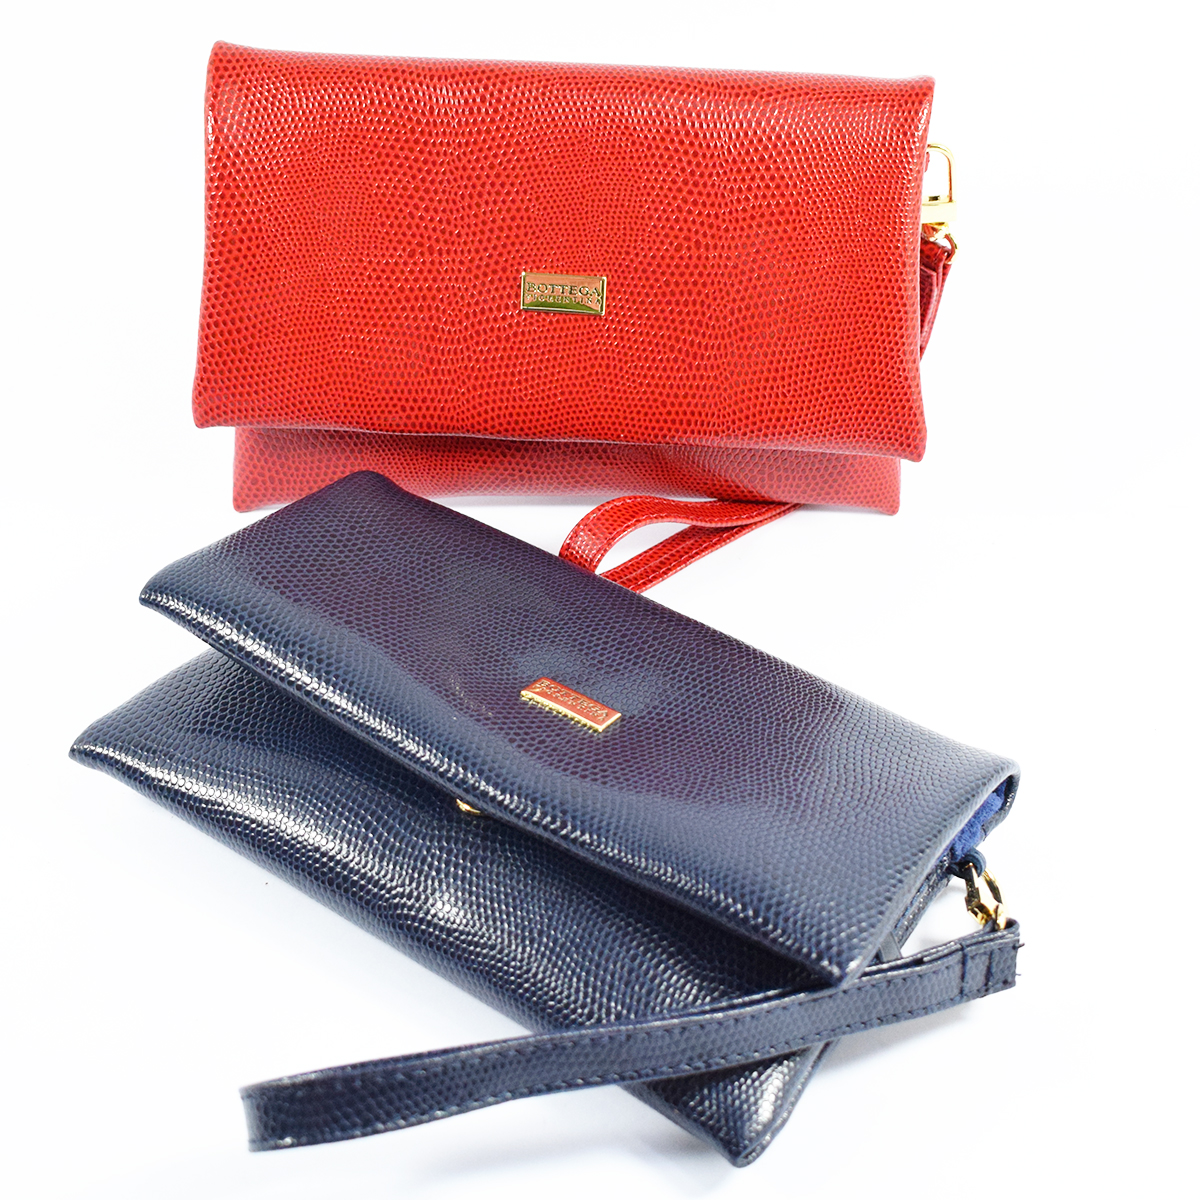 1738 CLUTCH WITH DETACHABLE HANDLE by Bottega Fiorentina